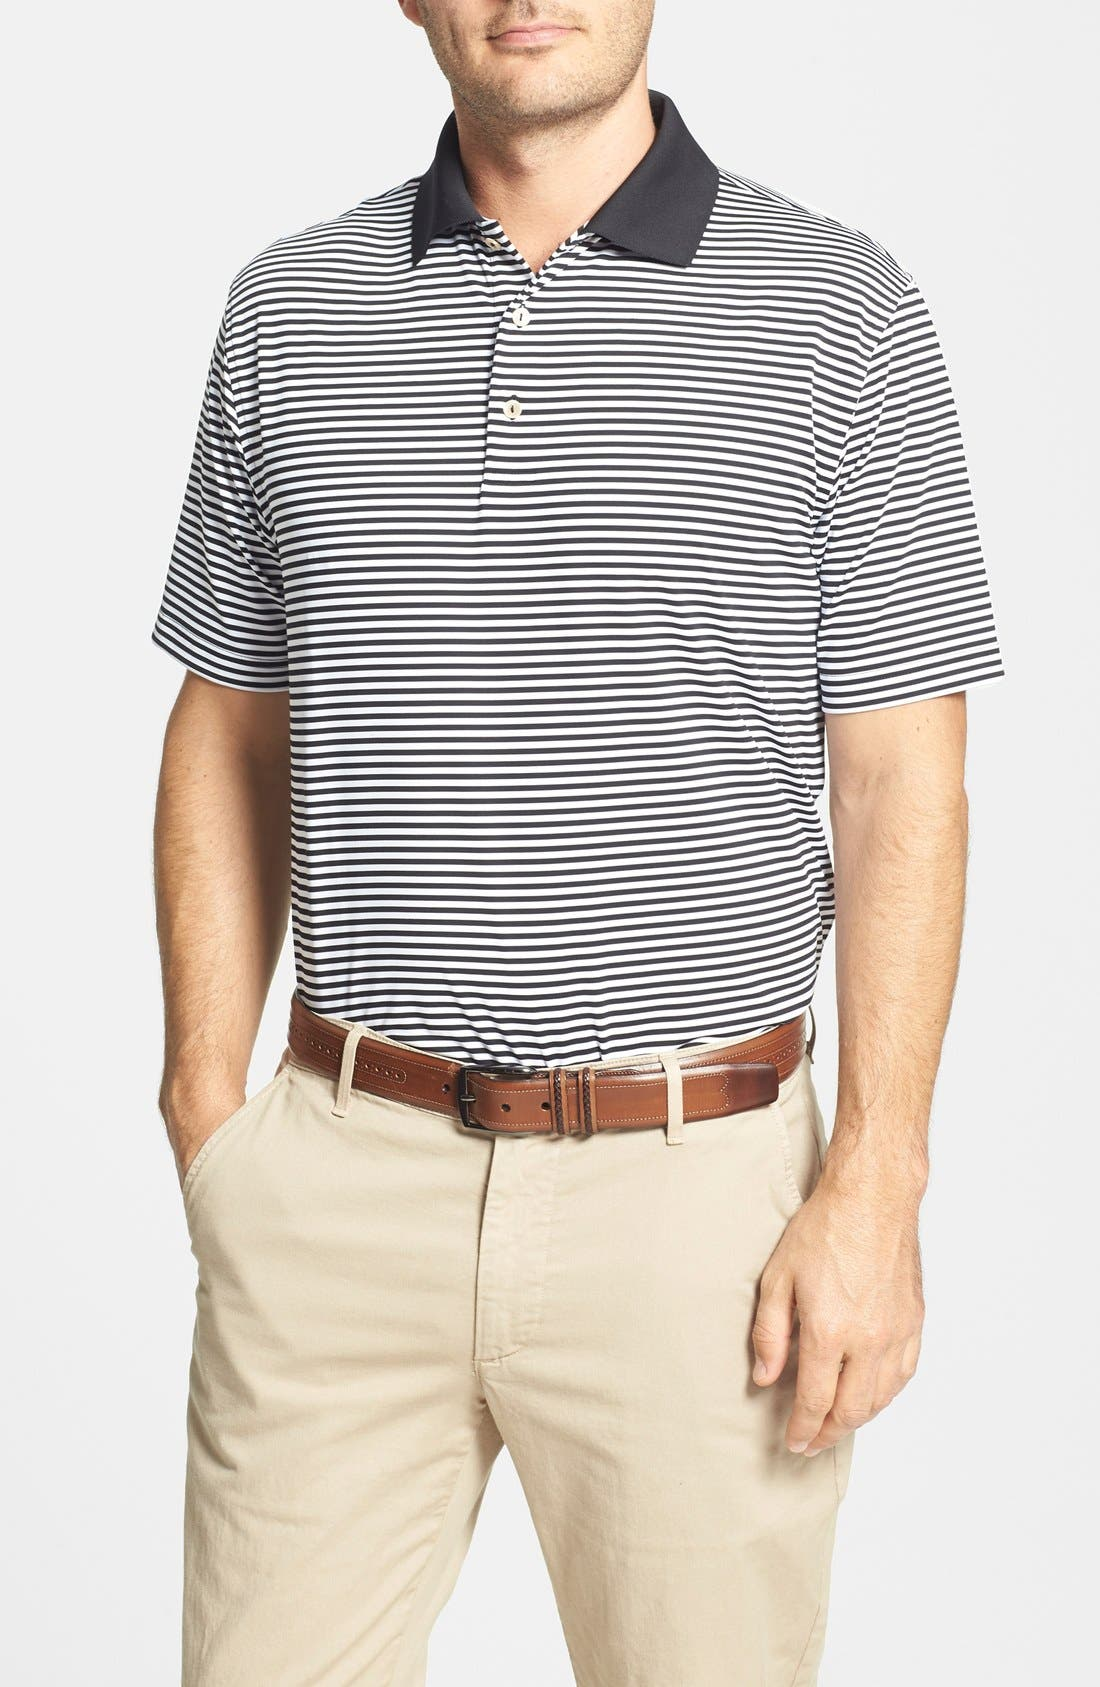 Alternate Image 1 Selected - Peter Millar 'Competition' Stripe Stretch Microfiber Golf Polo